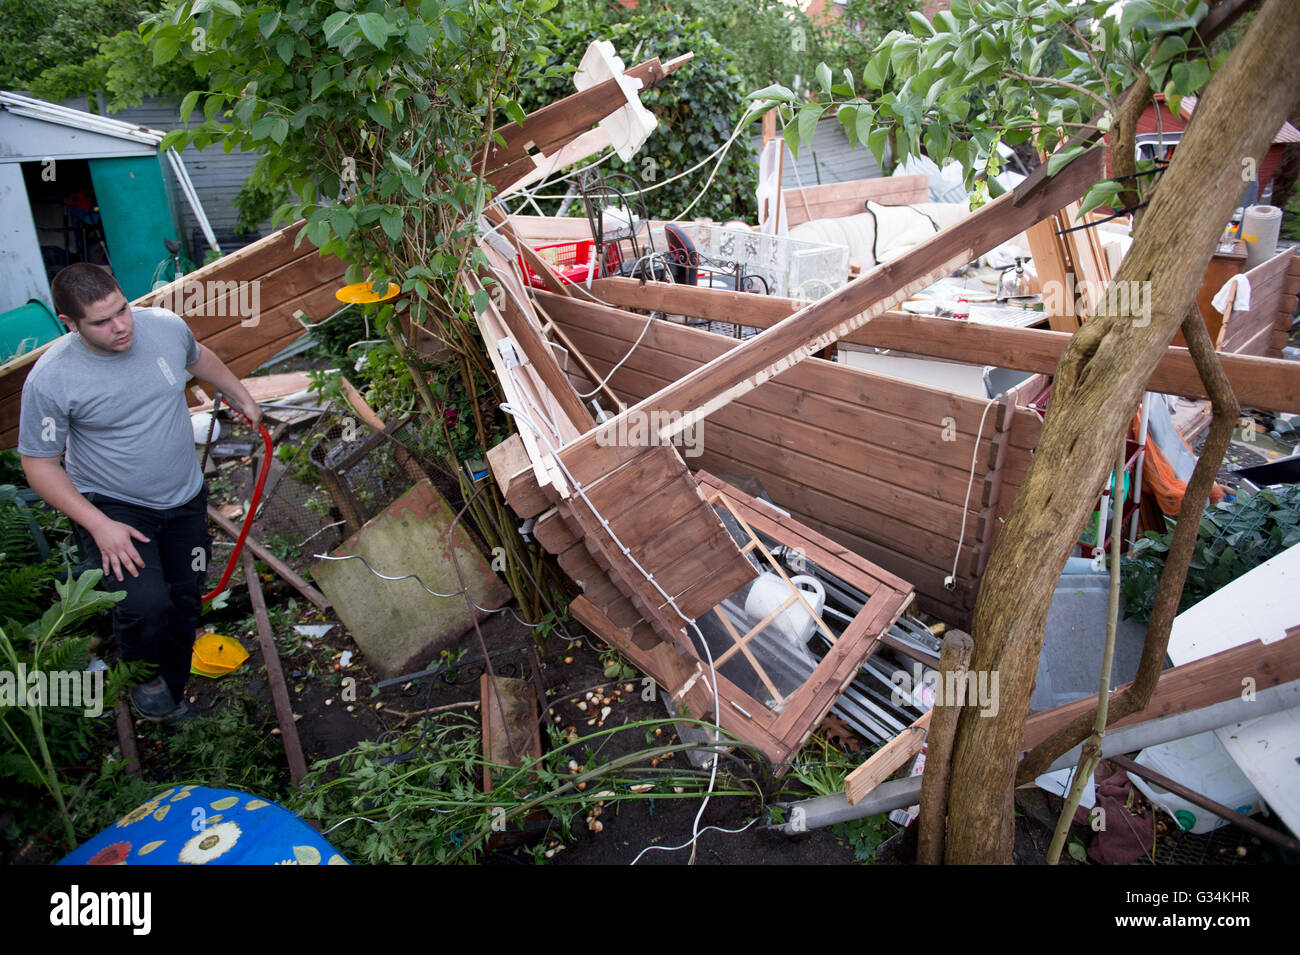 Dominic stands in the remains of an arbour that was destroyed by severe weather in Hamburg, 7 June 2016. Hamburg's - Stock Image